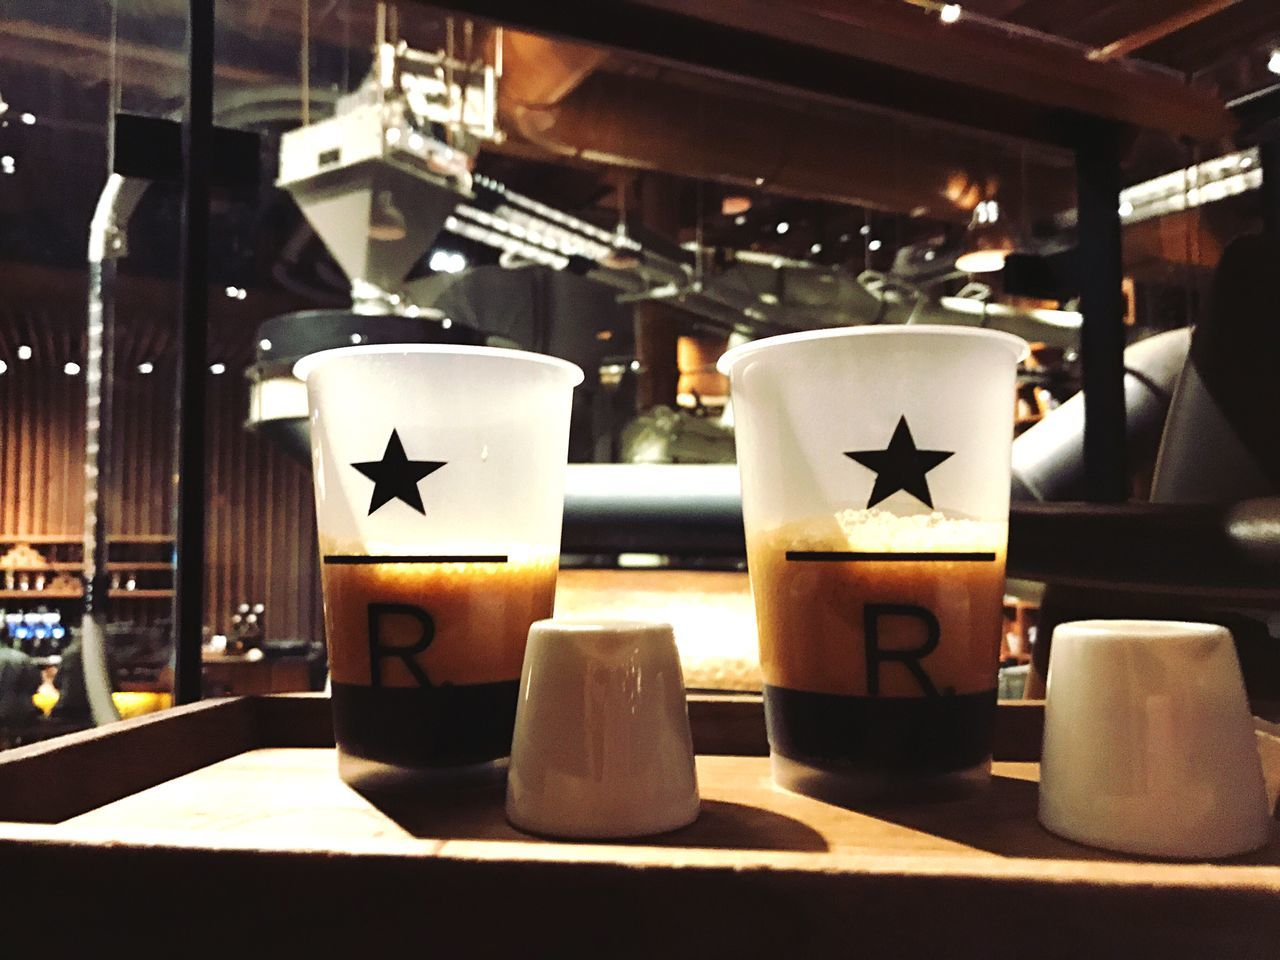 Starbucks StarbucksReserve Close-up Nightlife Hanging Out Relax Coffee Coffee Break Coffee ☕ Coffee Shop Shakirato Myfav MyFavorite